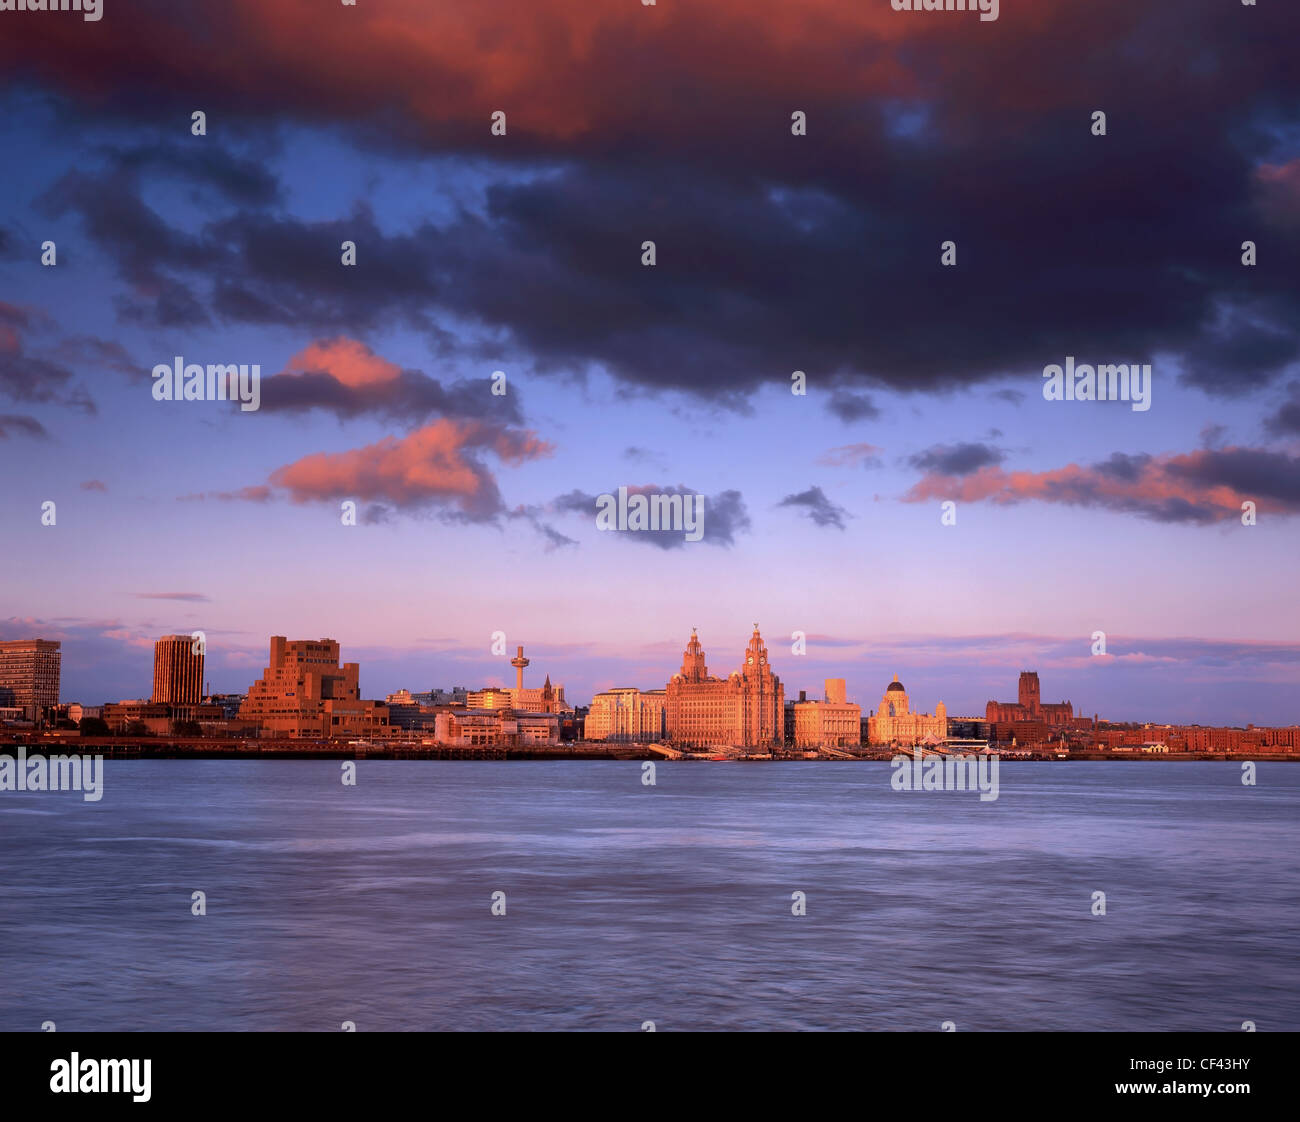 View across the River Mersey towards the Three Graces on the Liverpool waterfront at sunset. - Stock Image